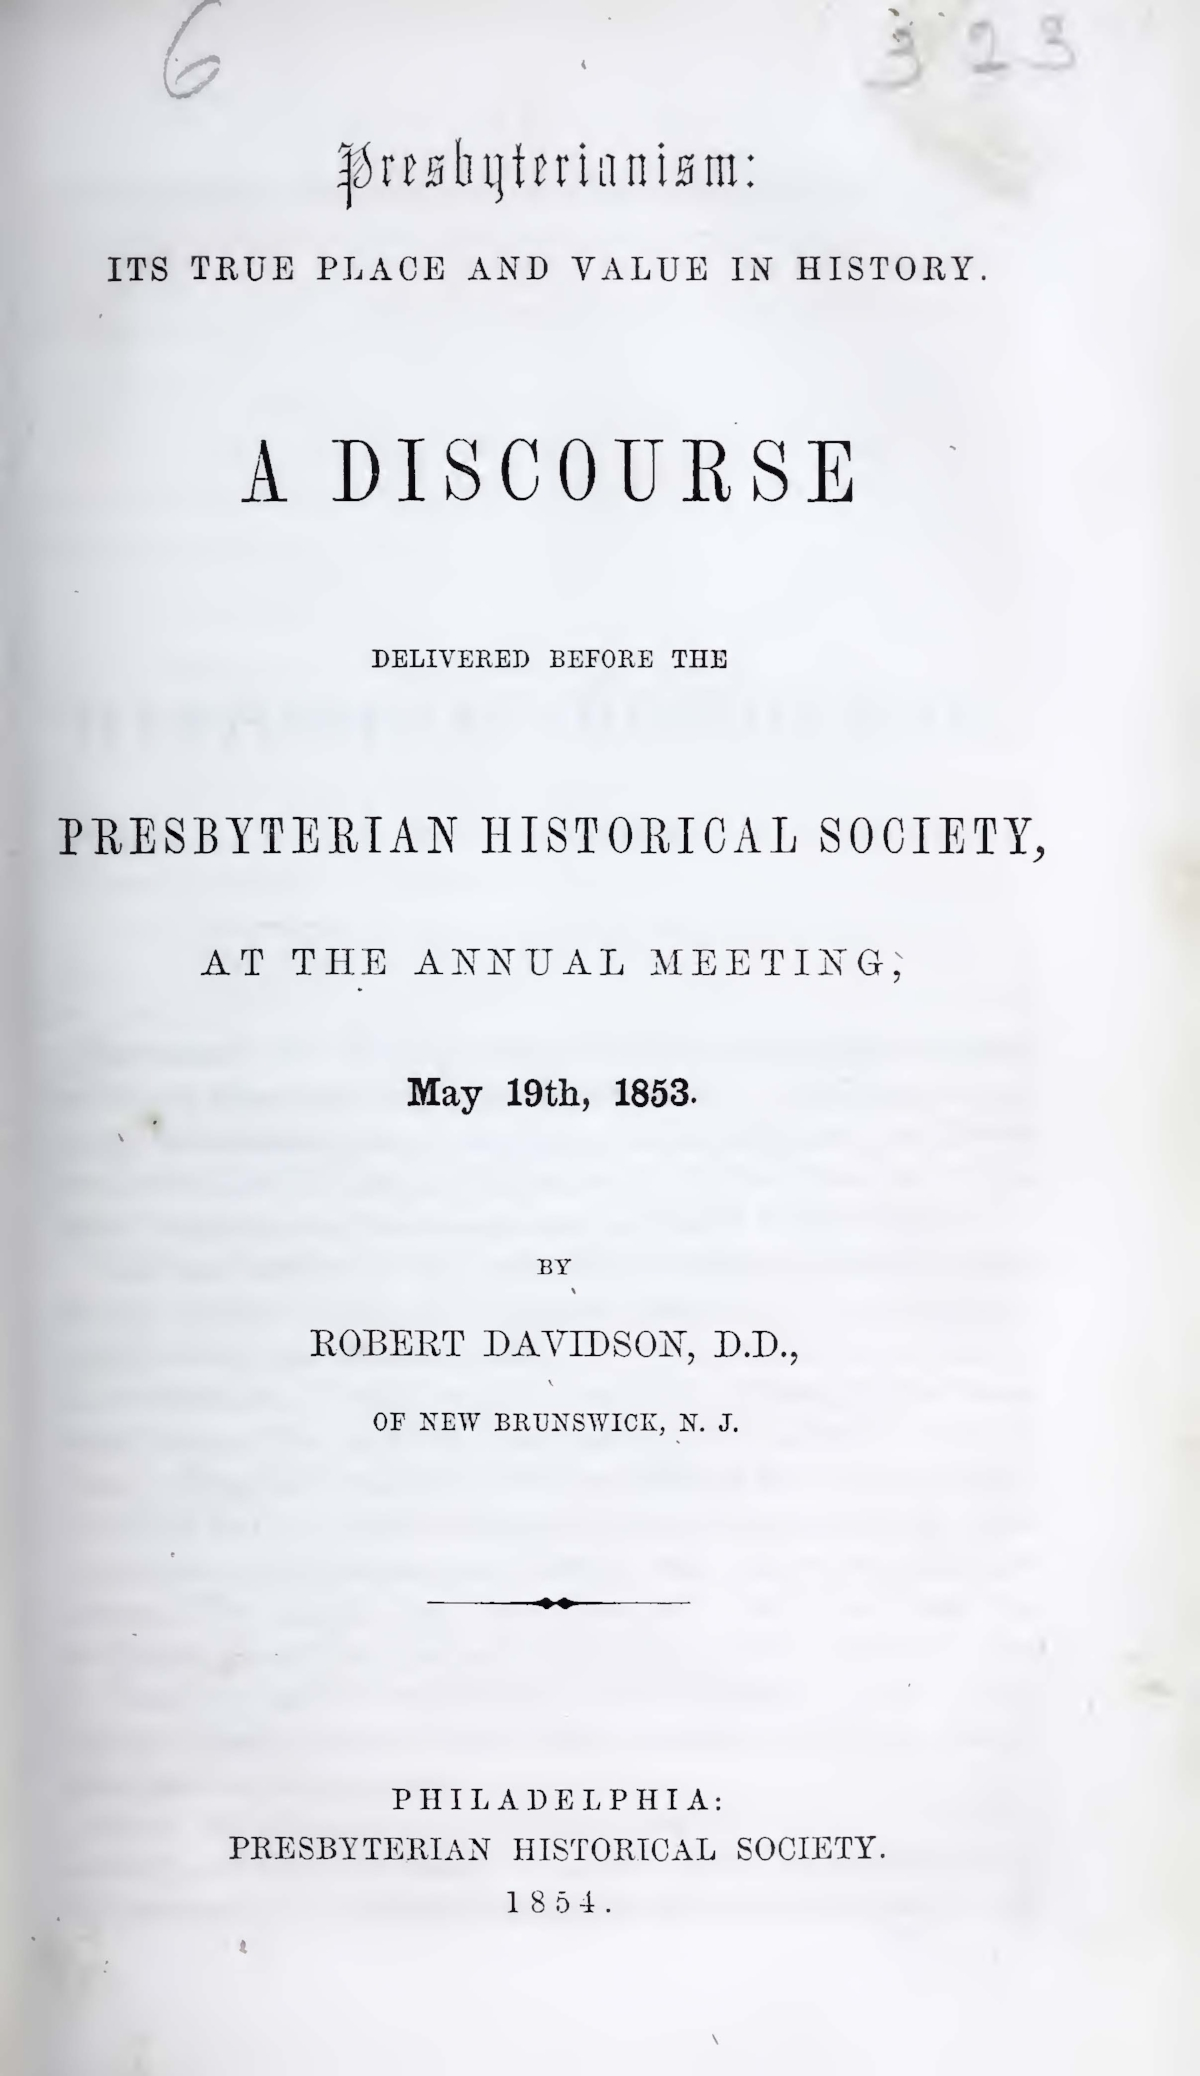 Davidson, Robert, Presbyterianism Its True Place and Value in History Title Page.jpg